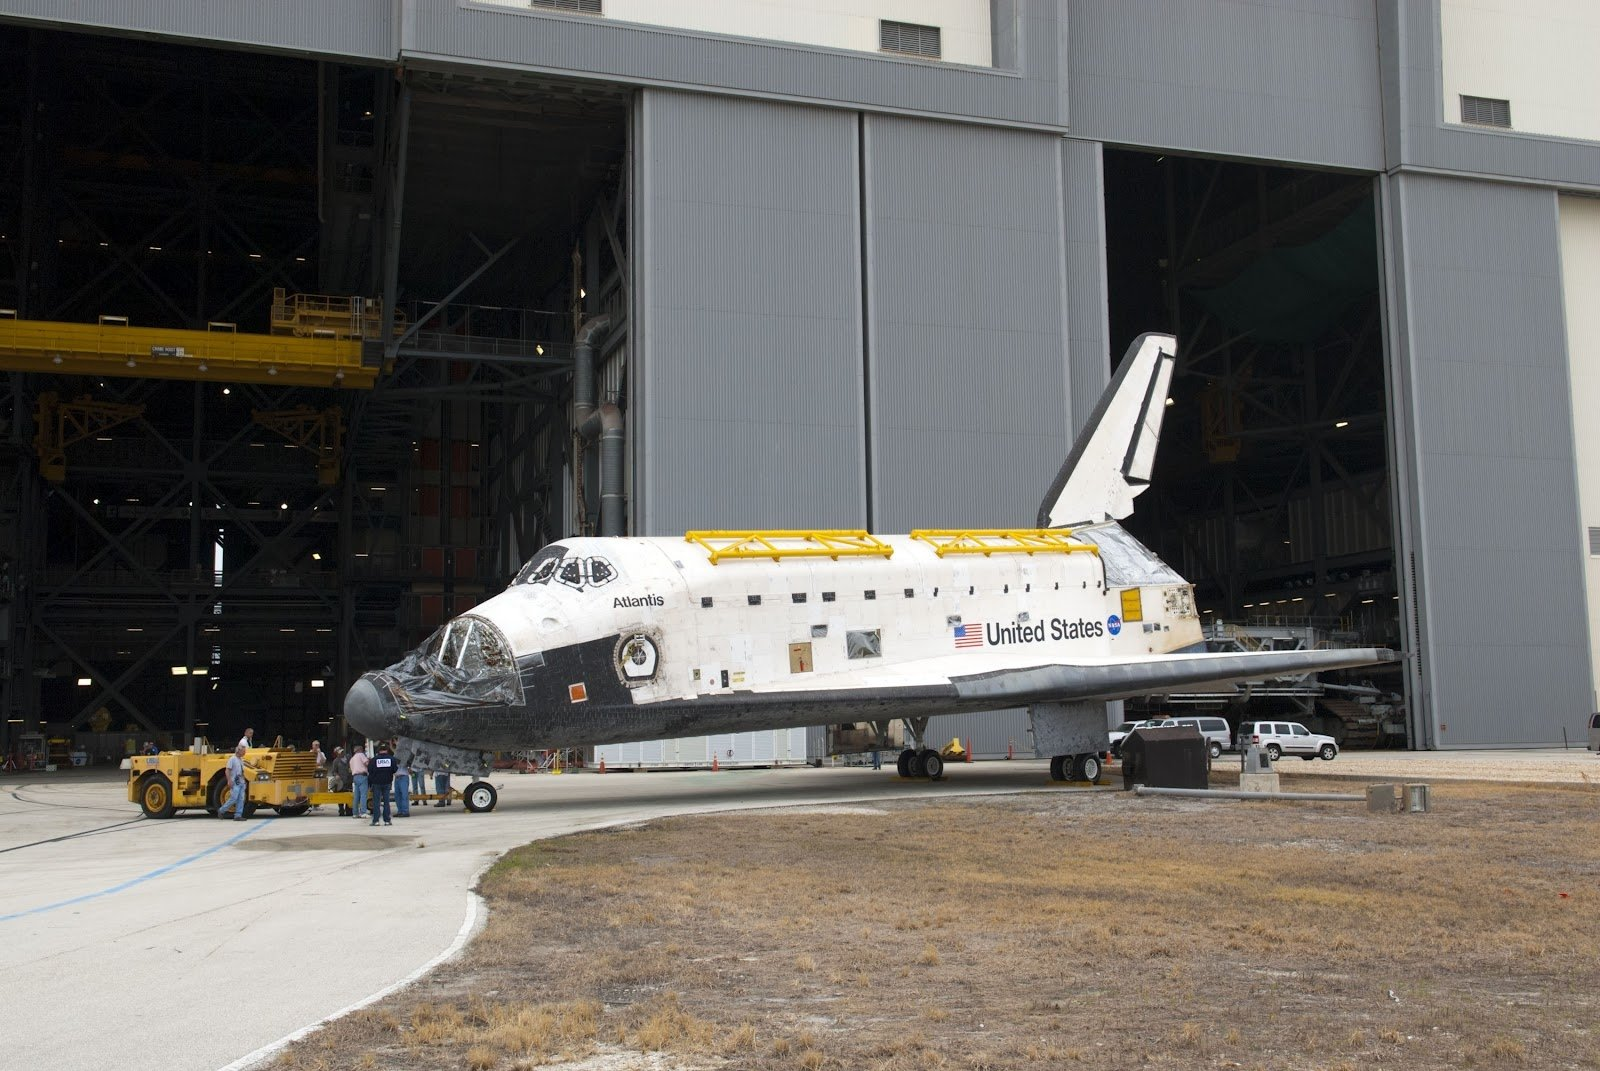 space shuttle vehicles - photo #23